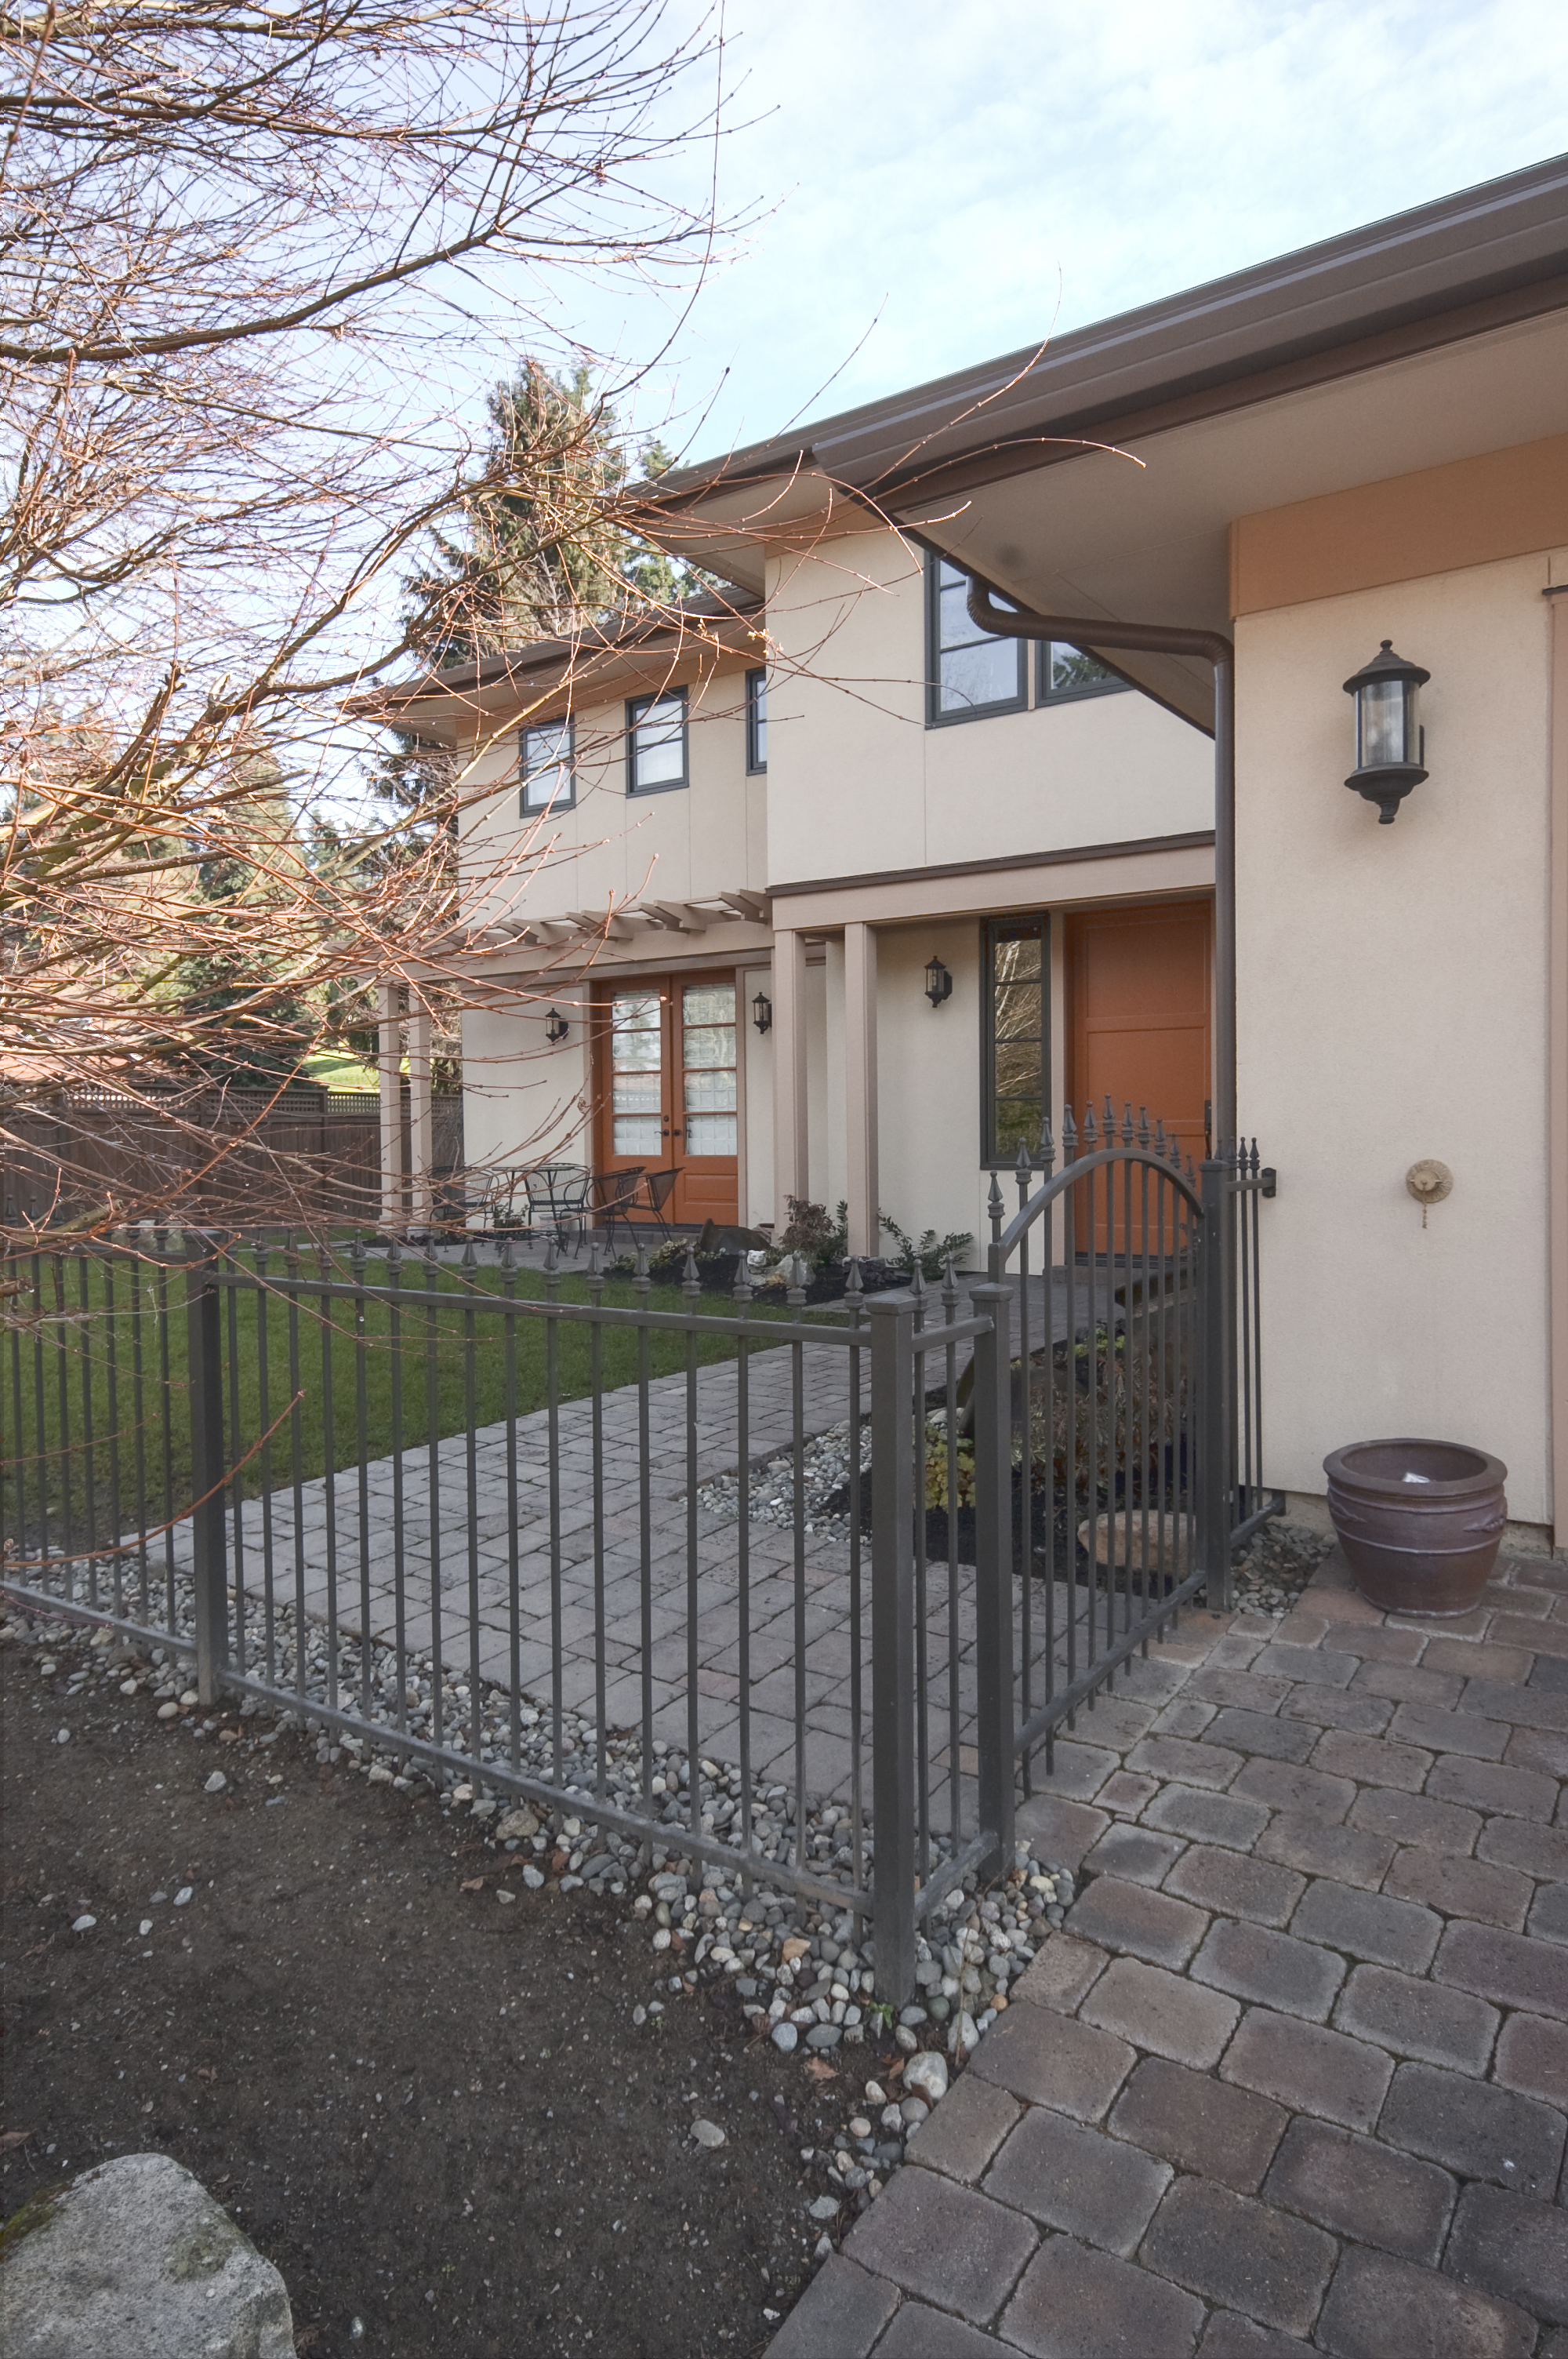 Original custom iron fence was modified and added onto to fit the new yard configuration.